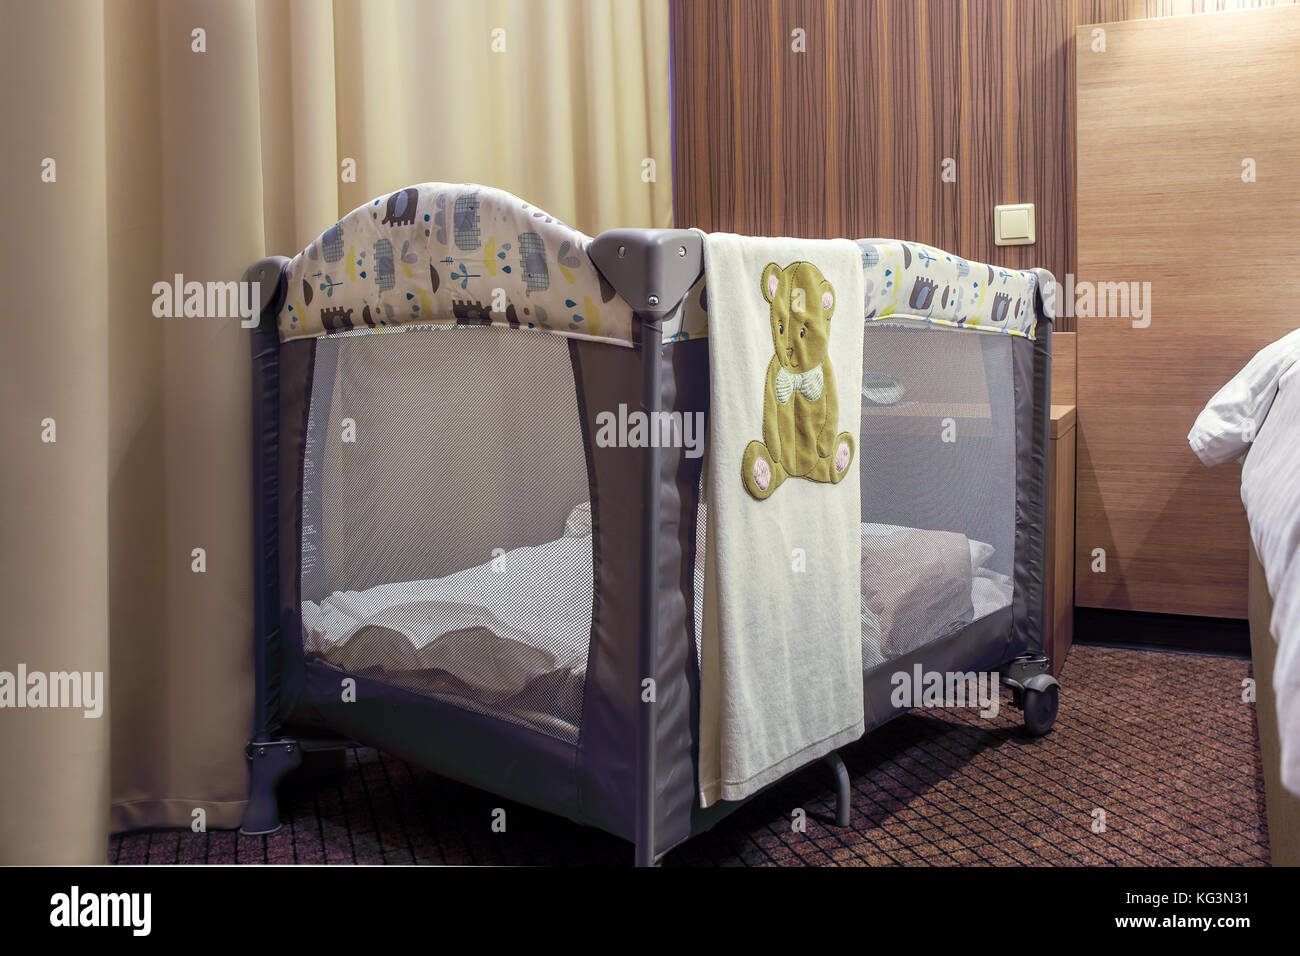 A Gray Portable Baby Bed For Newborns On Wheels Decorated With Stock Photo Alamy